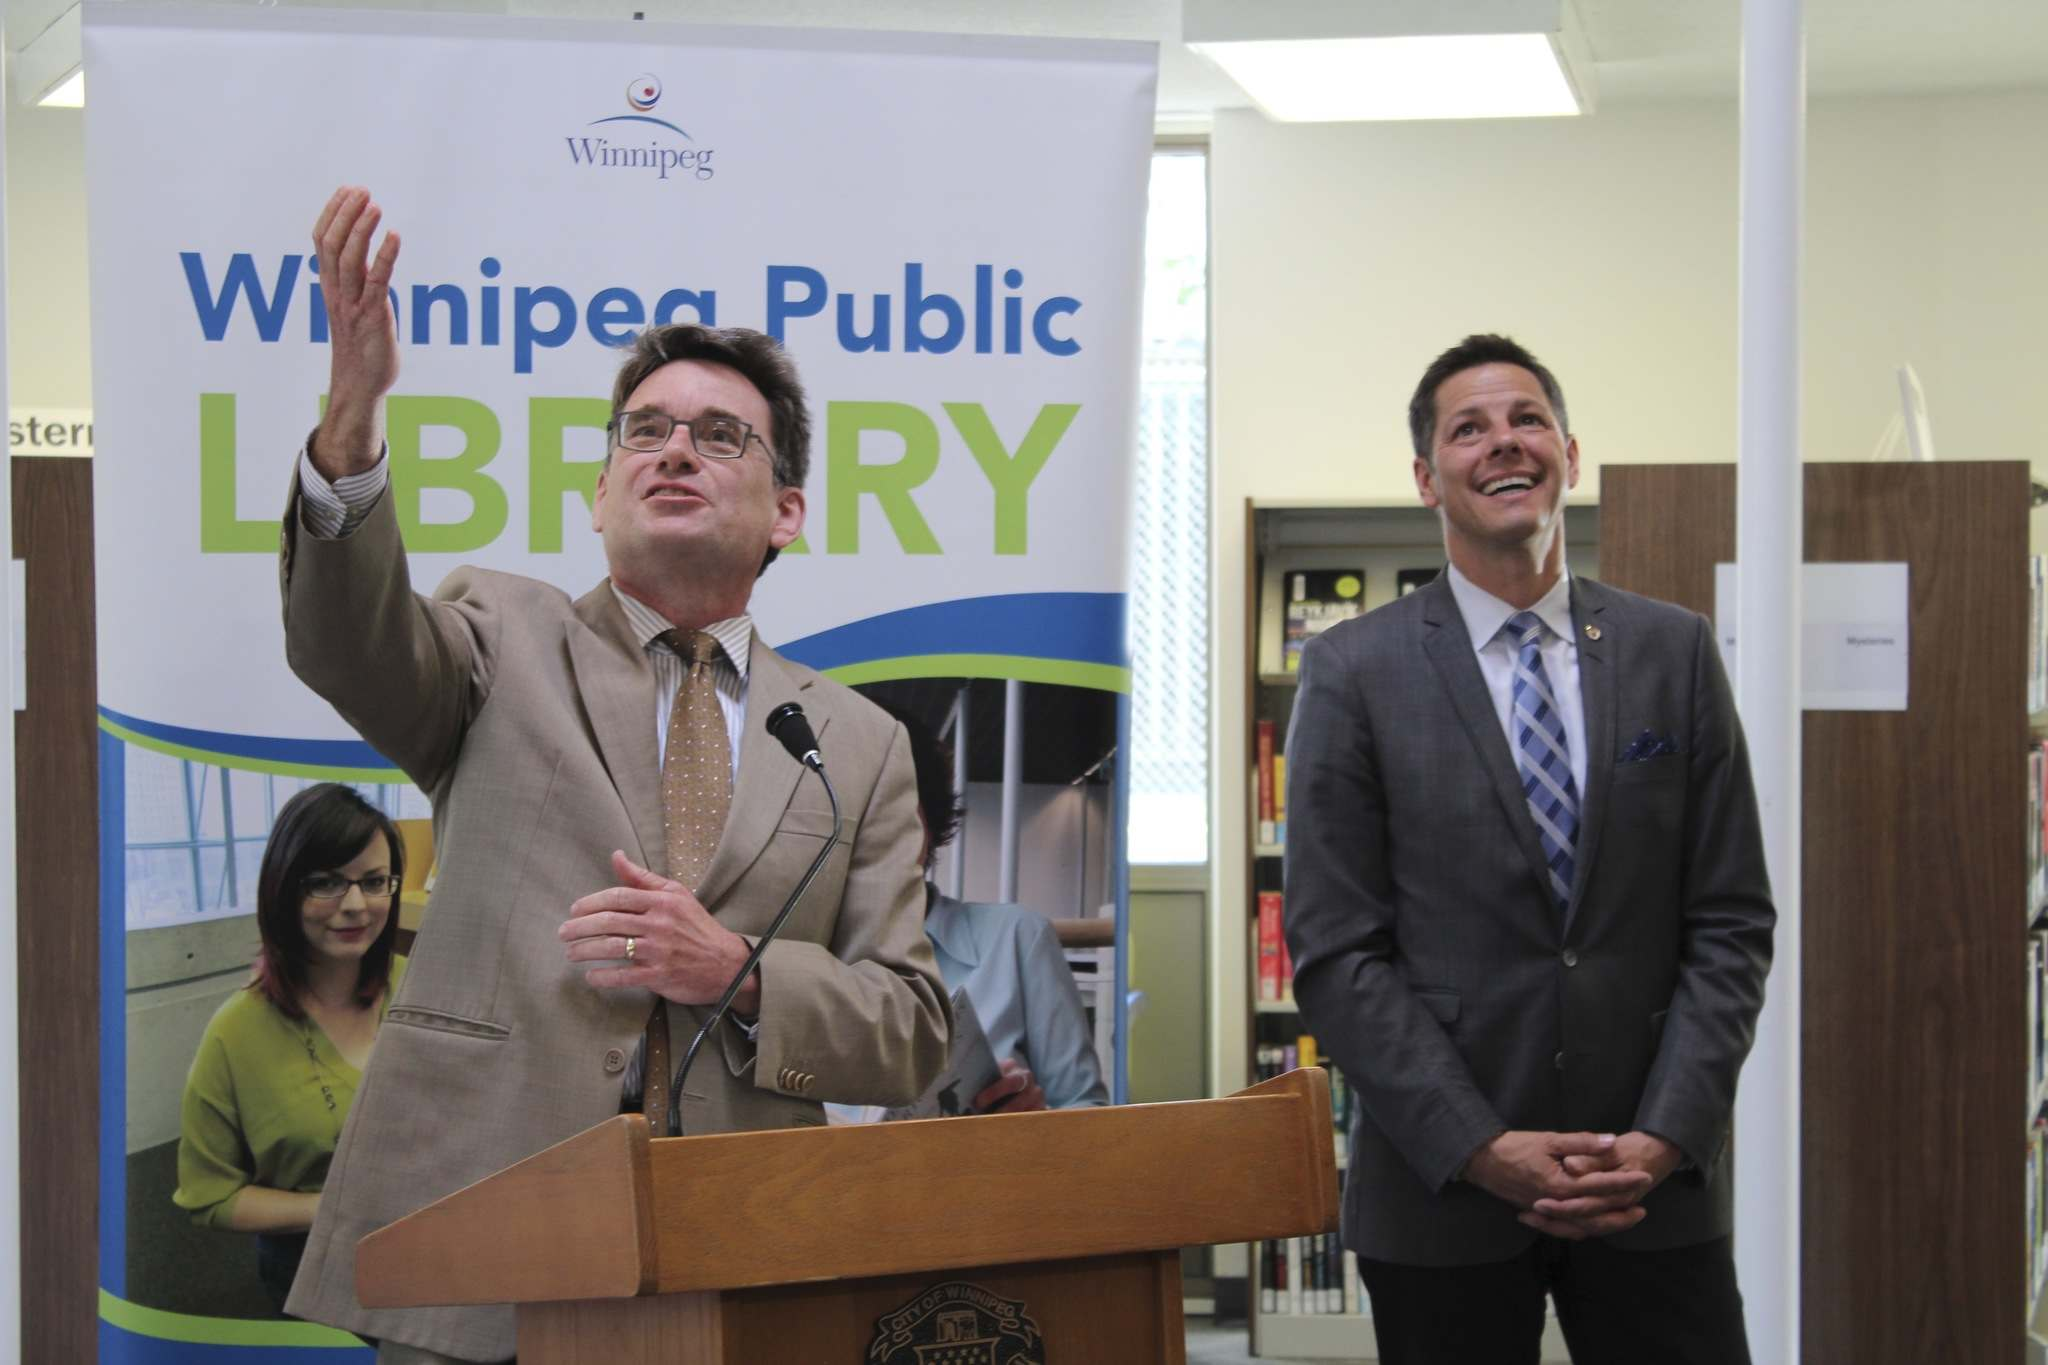 MAGGIE MACINTOSH / WINNIPEG FREE PRESS</p><p>Coun. Brian Mayes (left), seen with Mayor Brian Bowman at the St. Vital Library reopening on Monday, said his favourite part of the library's renovation is the new elevator.</p>